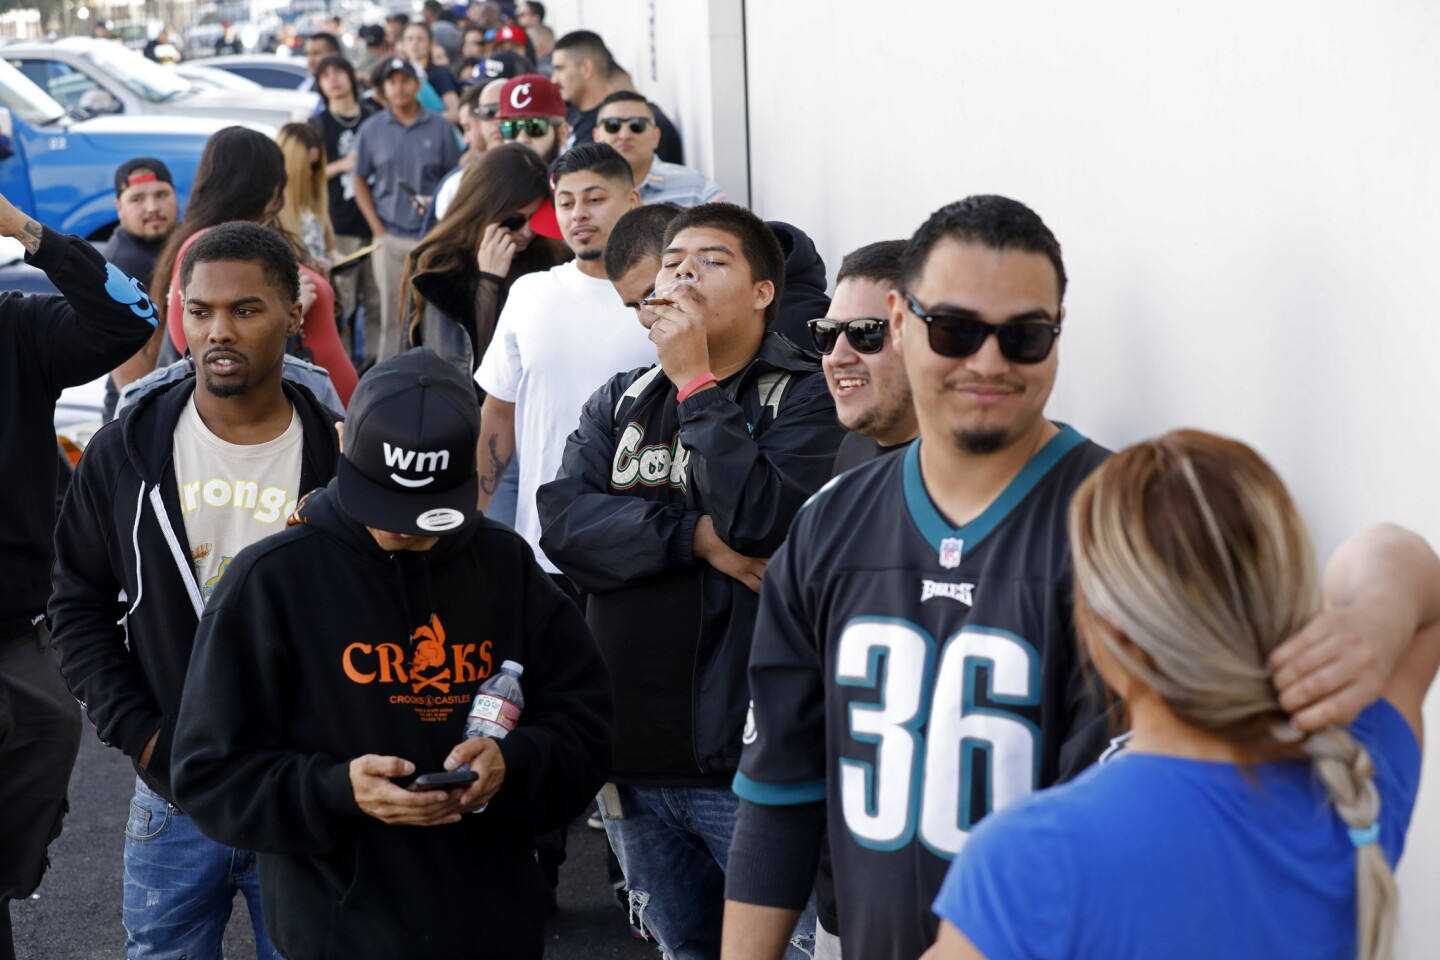 Anthony Ramirez, center, of Culver City, waits in line at the grand opening of Cookies Los Angeles, the city's first marijuana dispensary selling recreation use cannabis under Proposition 64.